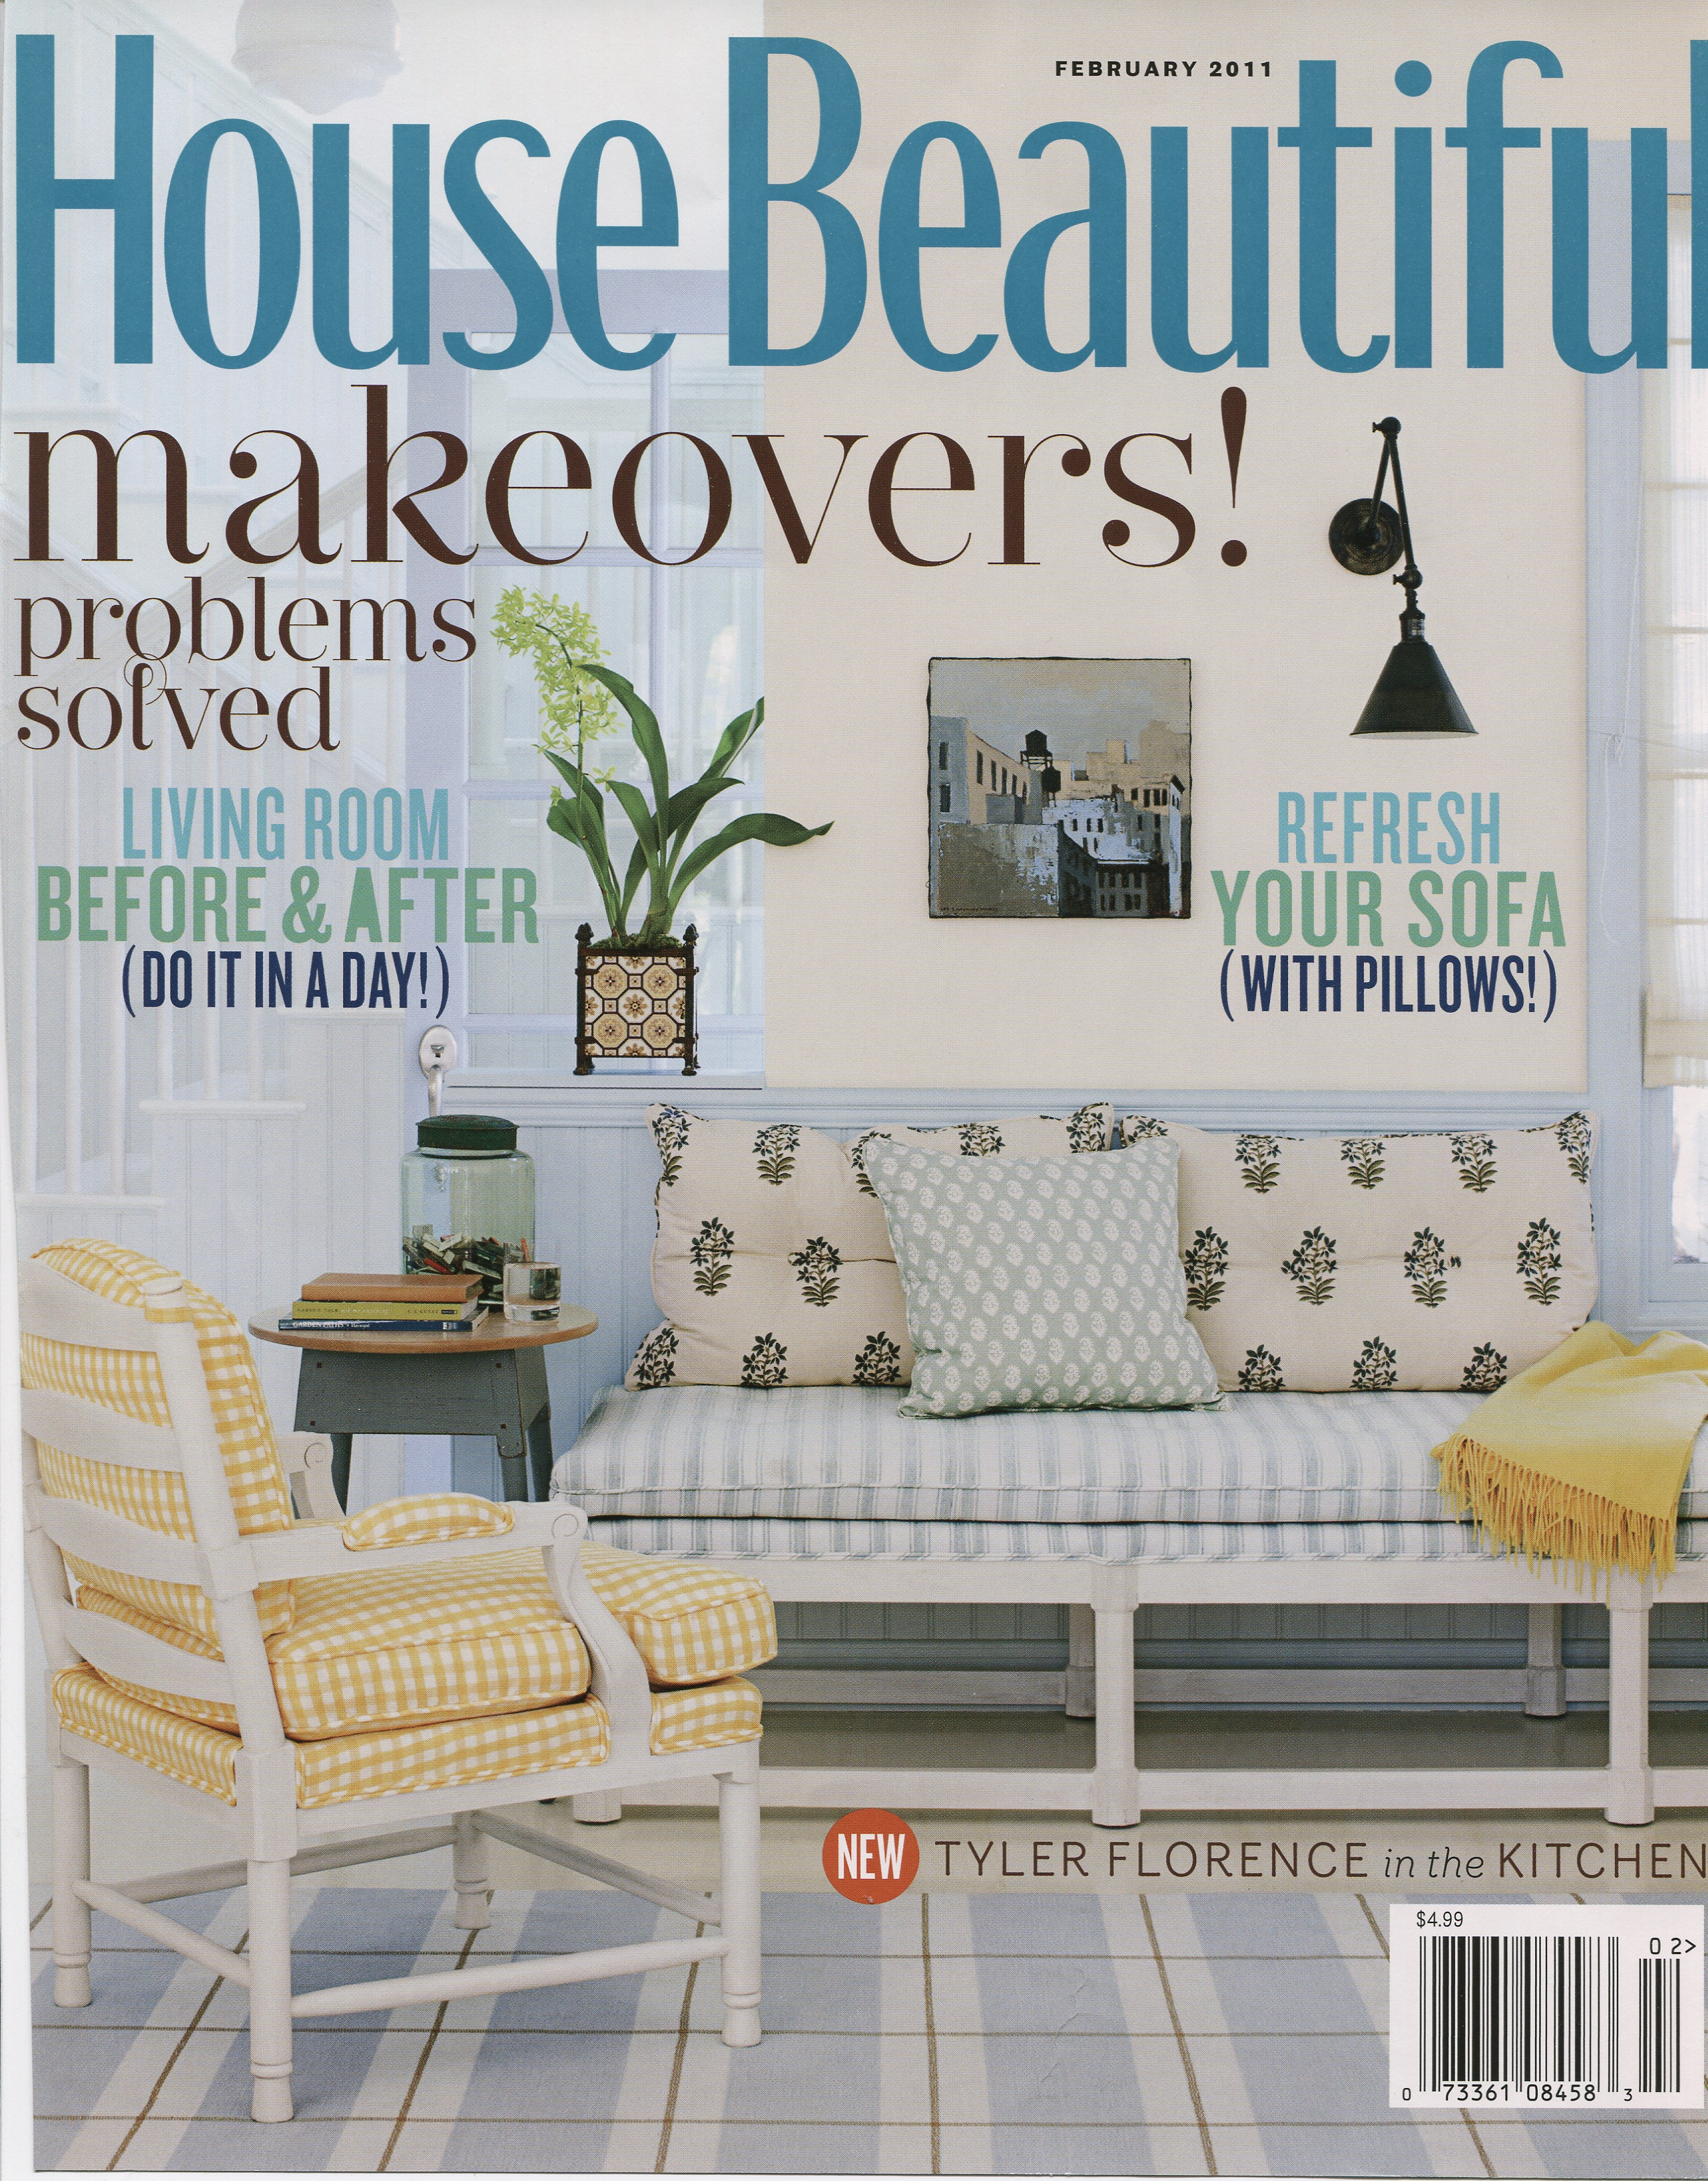 House Beautiful February 2011_1